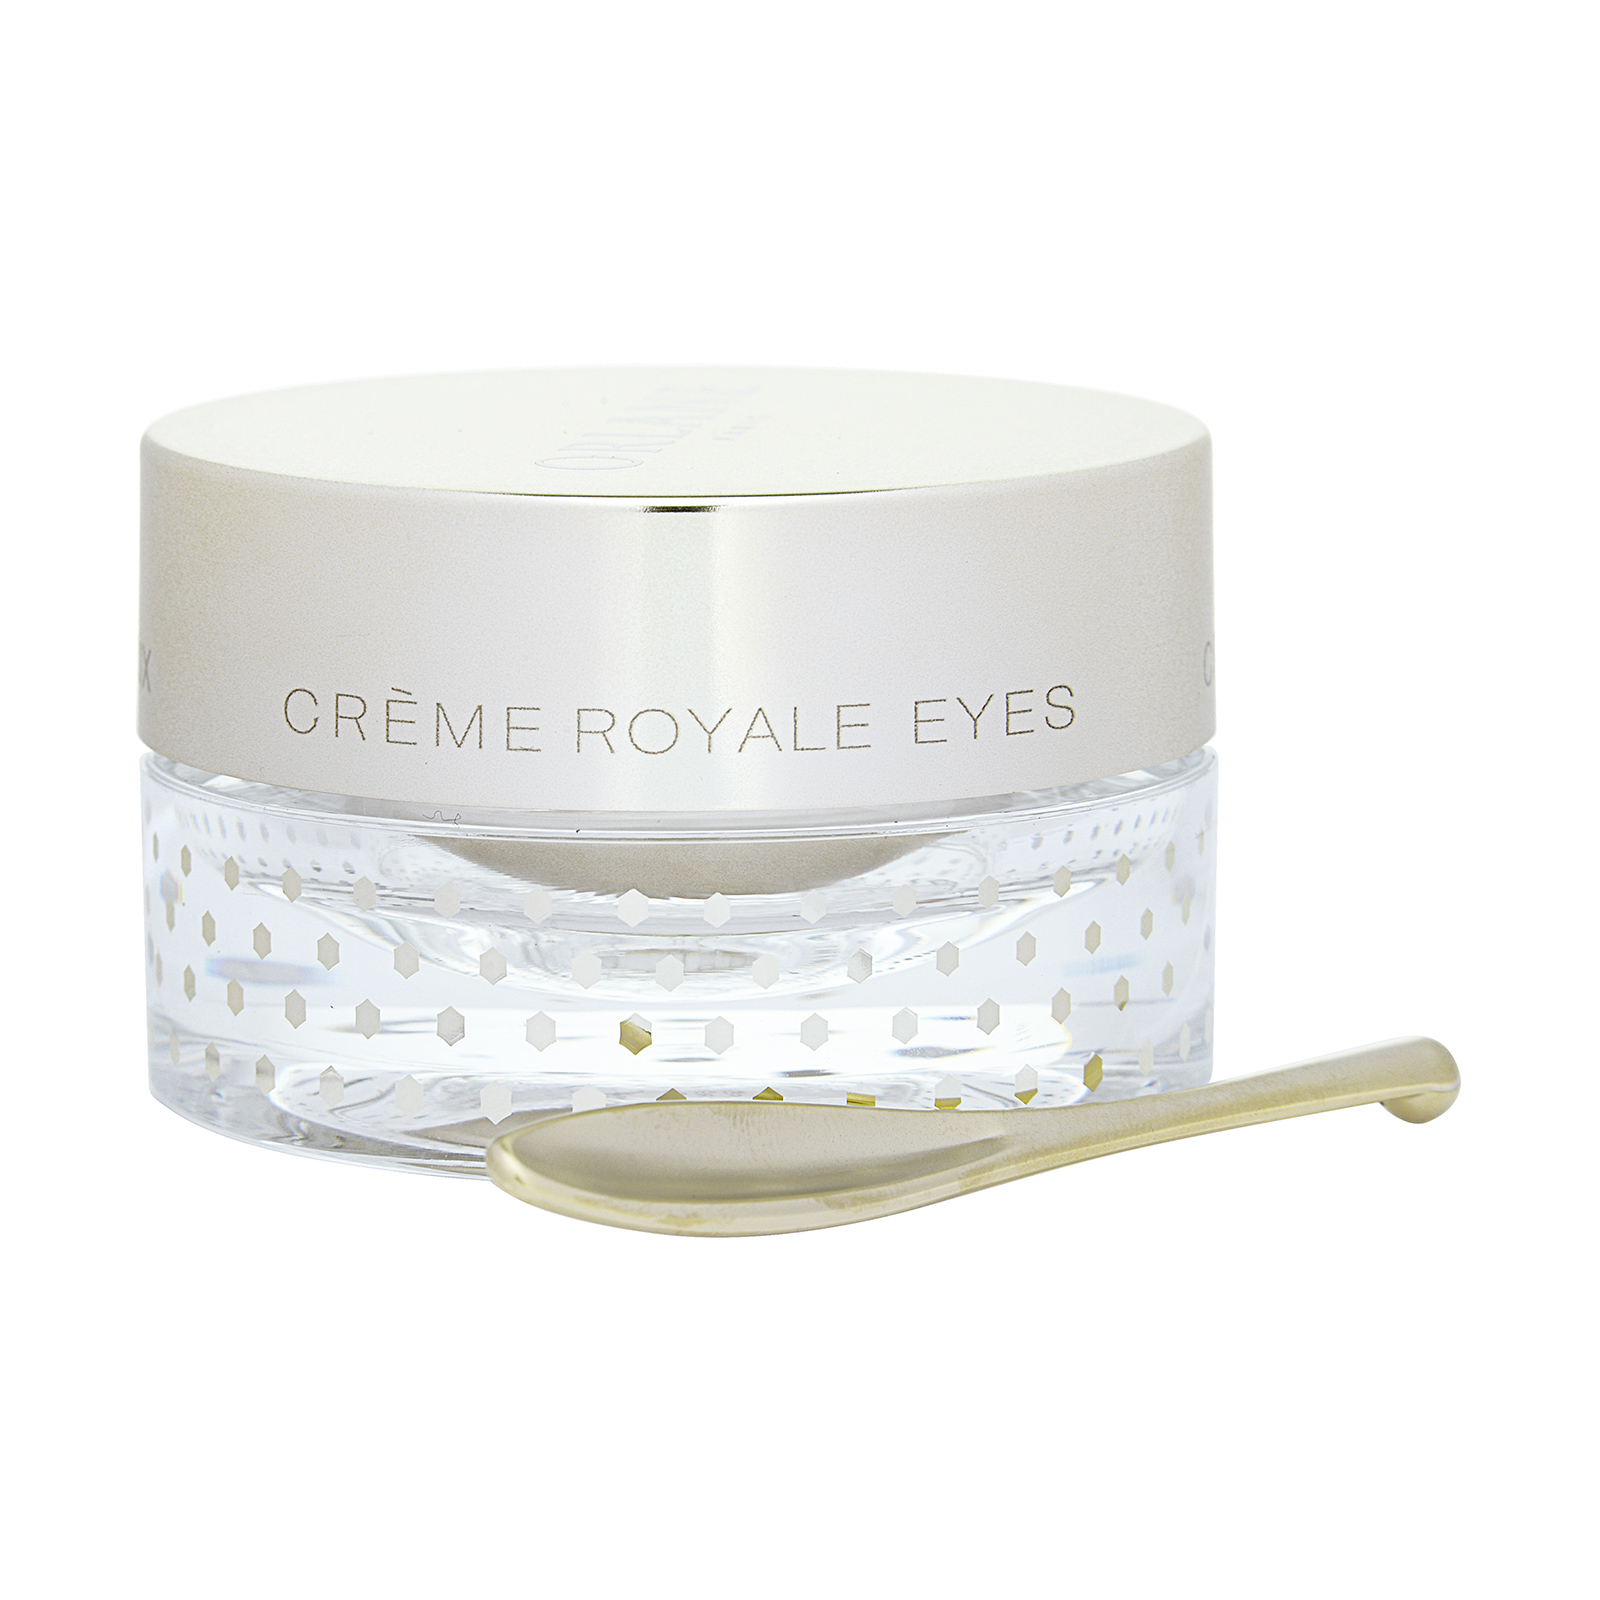 Orlane  Creme Royale Eyes 0.5oz, 15ml from Cosme-De.com